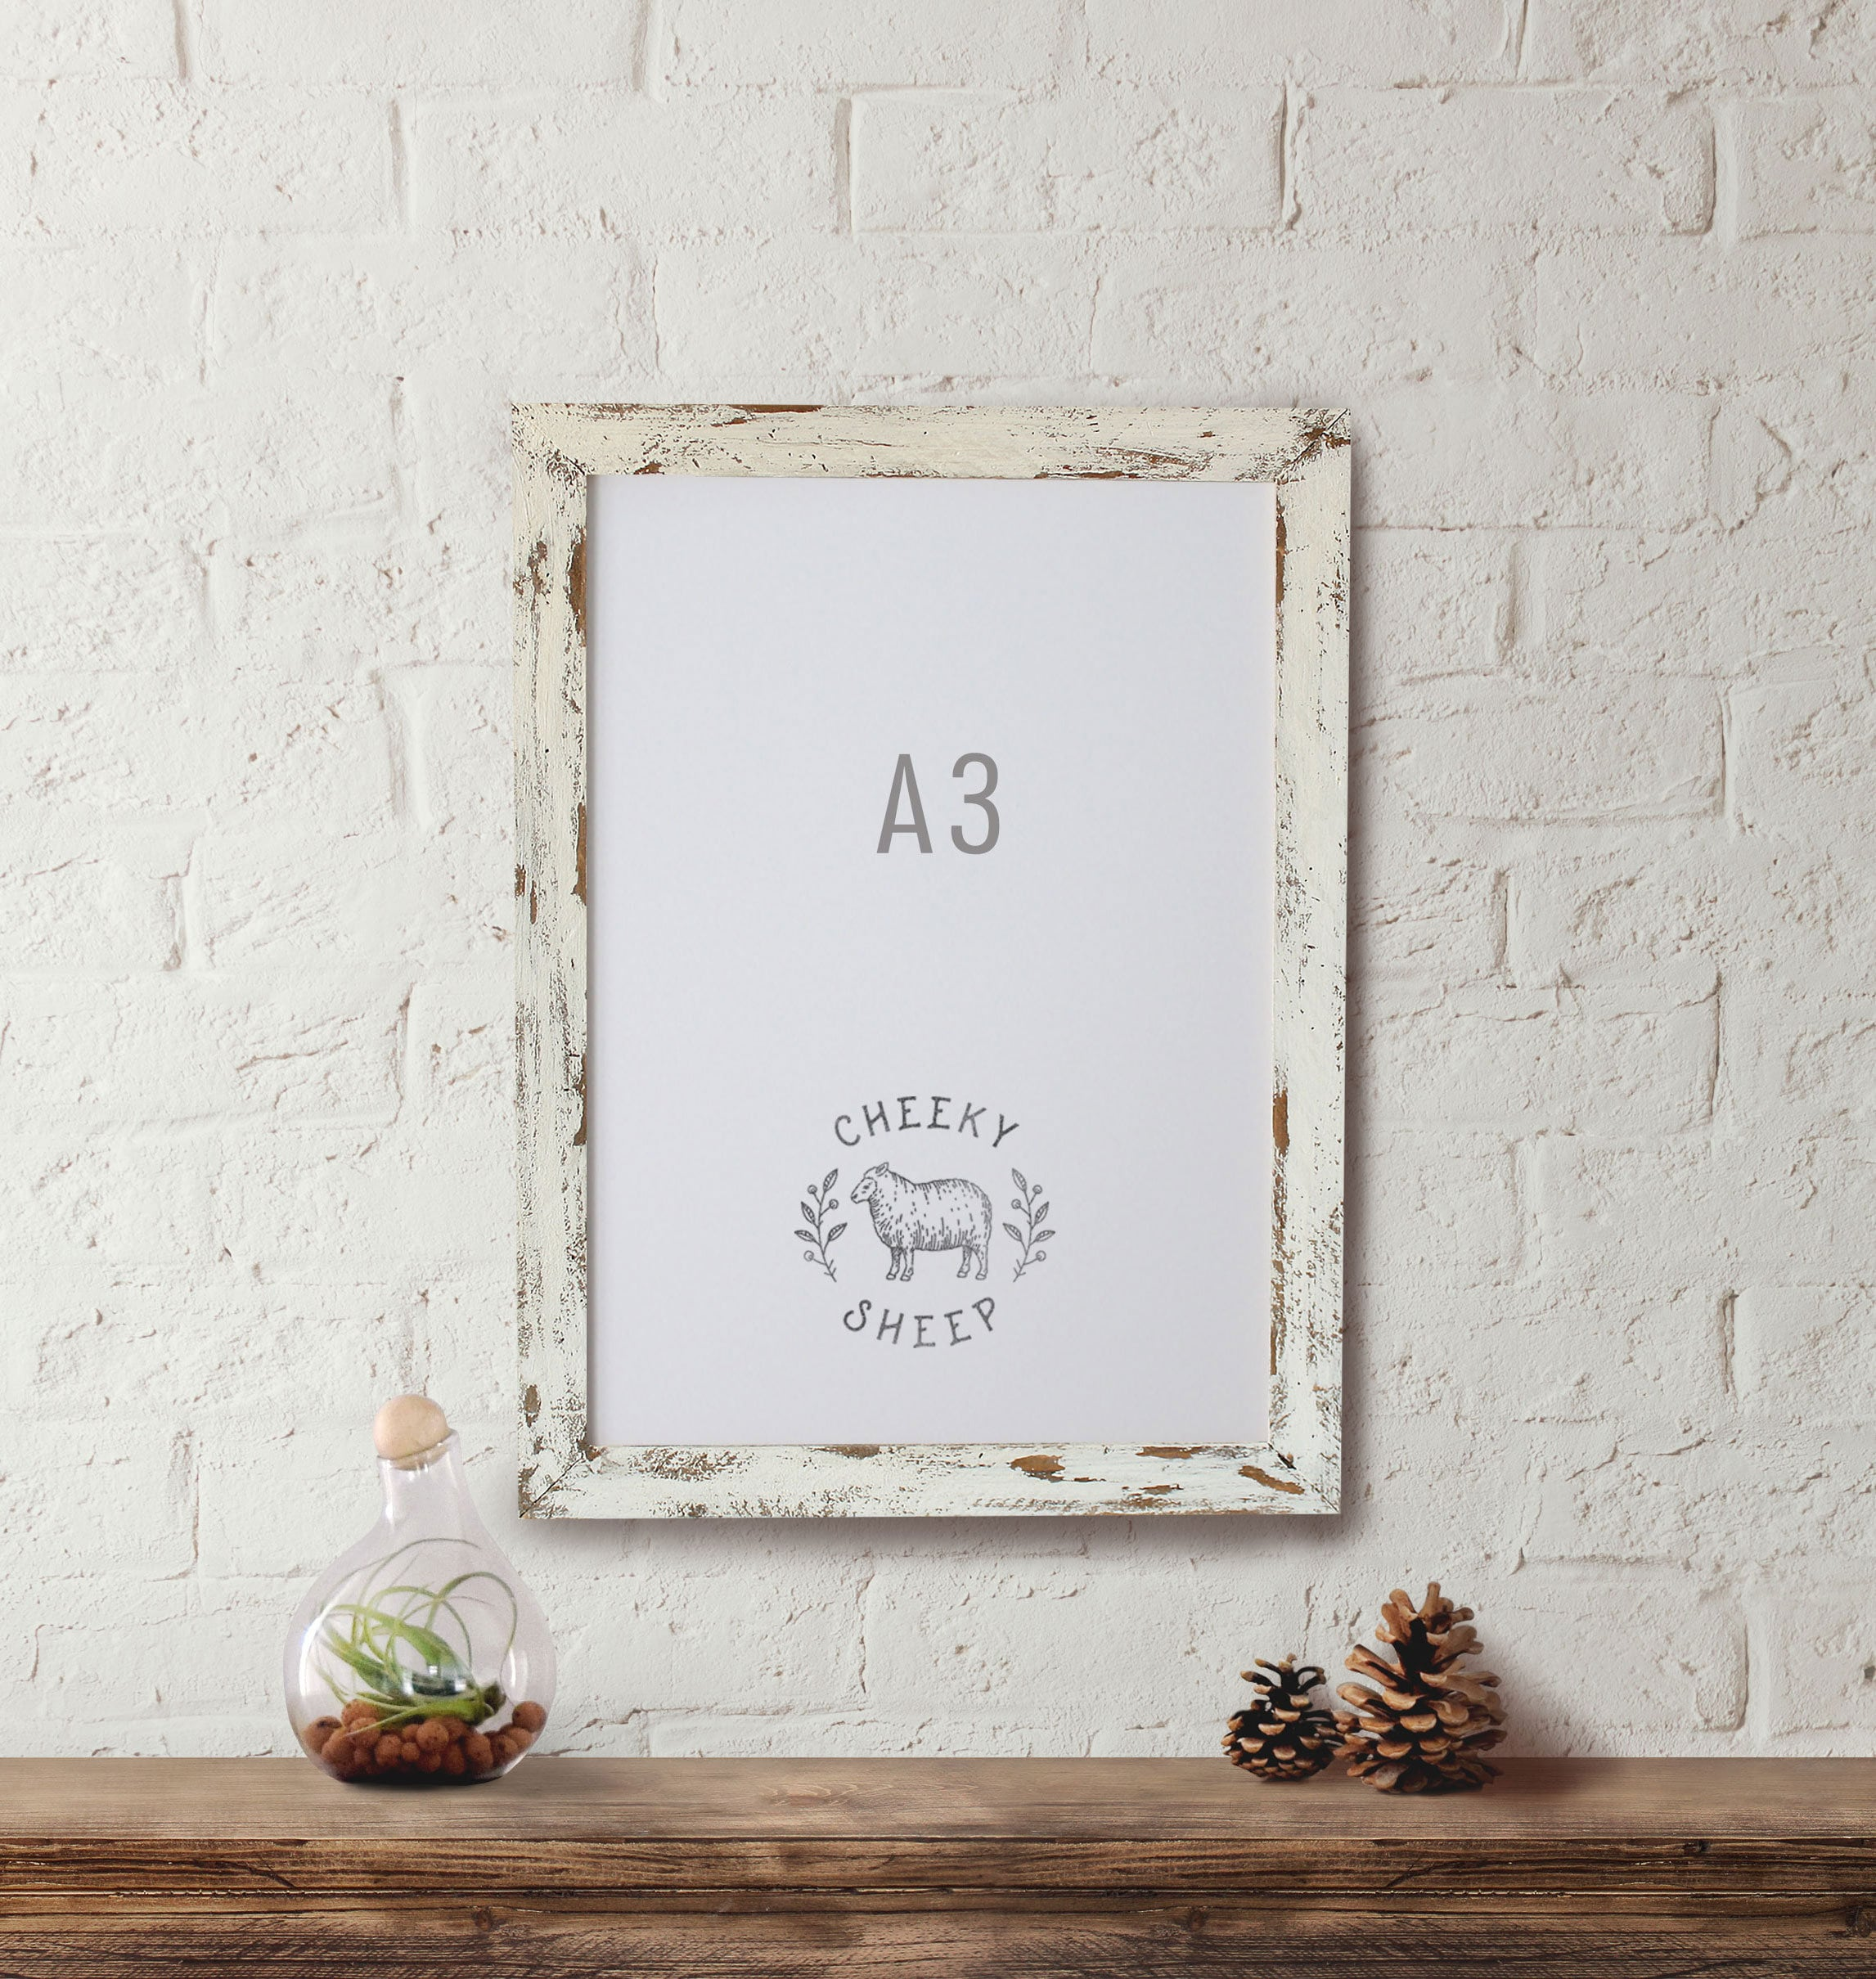 A3 Chippy Paint Picture Frame 29.7 cm x 42.0 cm Frame Distressed ...